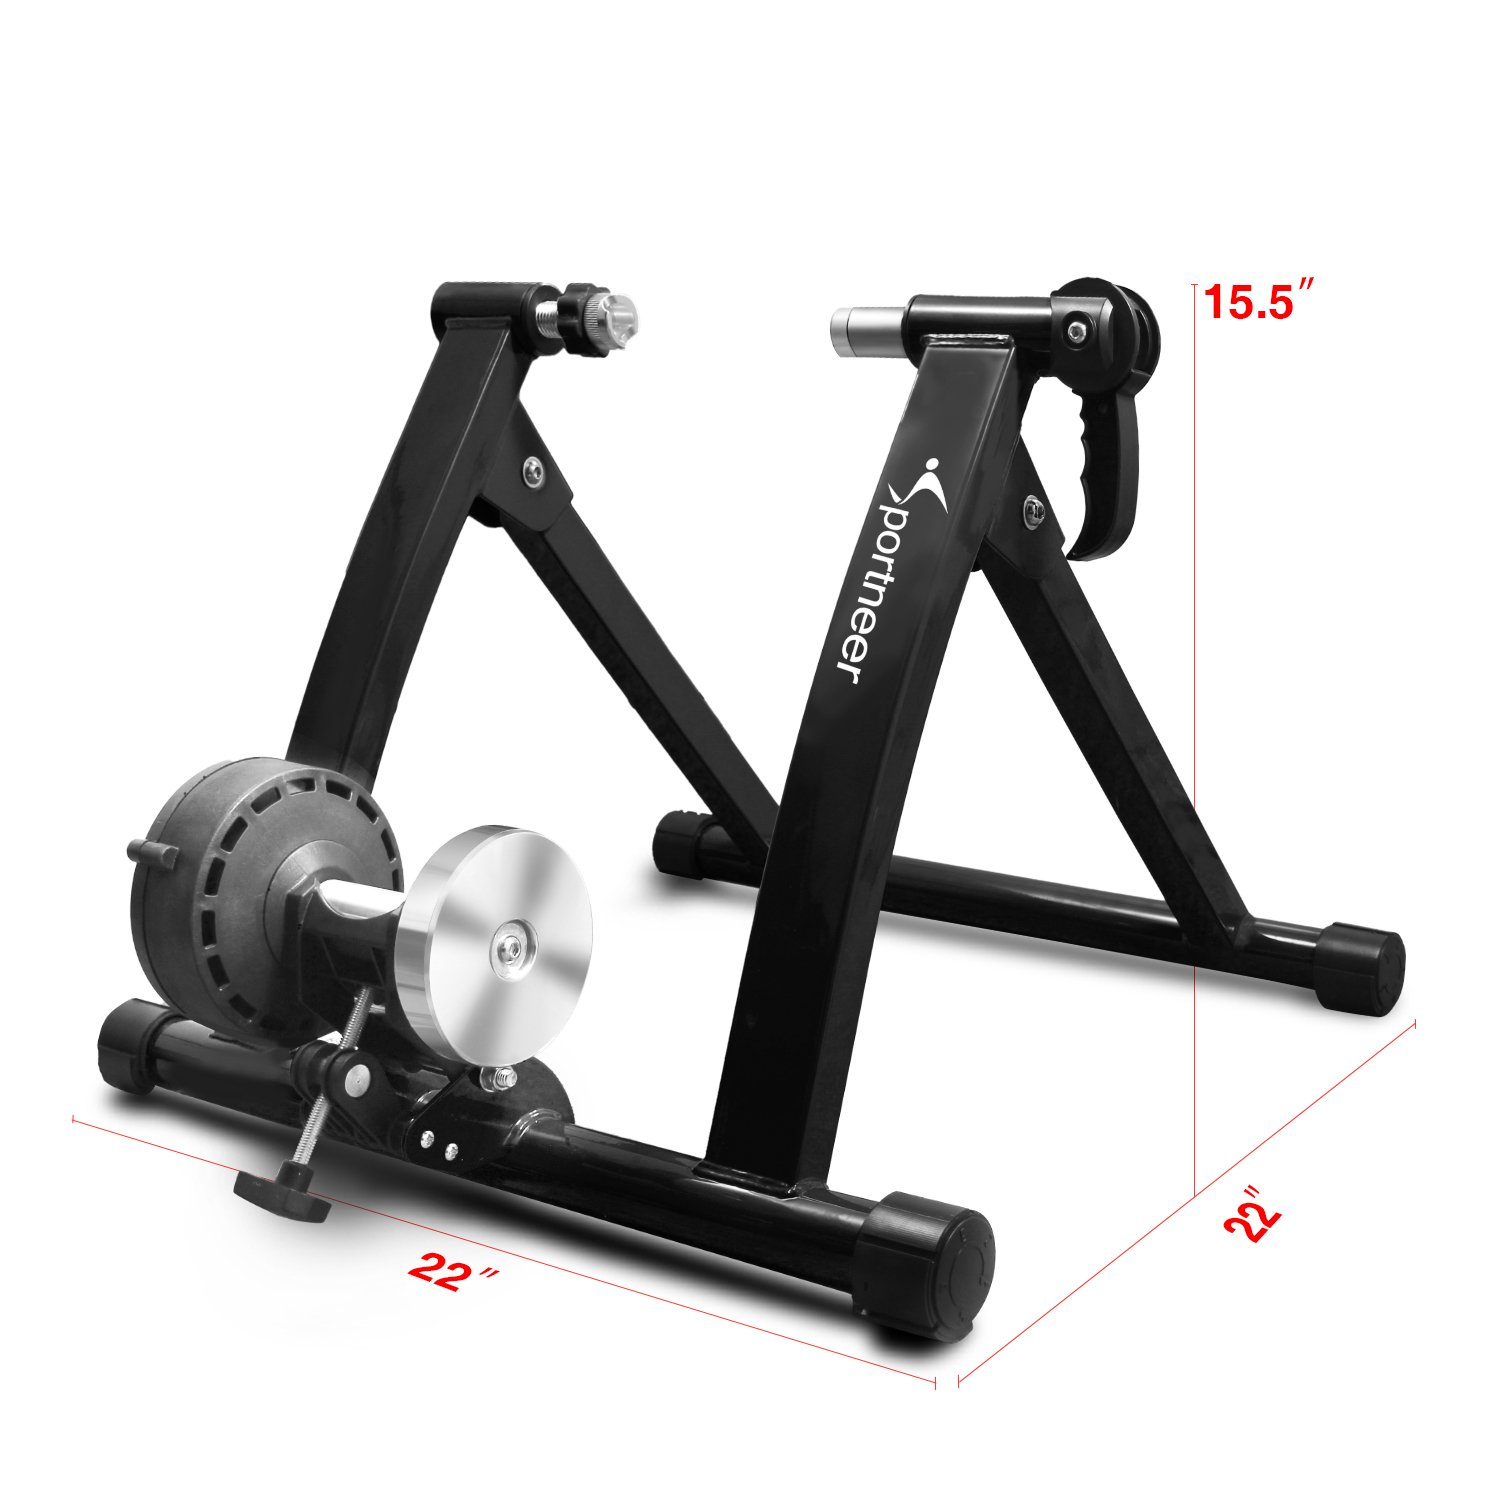 Sportneer Bike Trainer Stand Steel Bicycle Exercise Magnetic Stand with Noise Reduction Wheel, Black by Sportneer (Image #8)